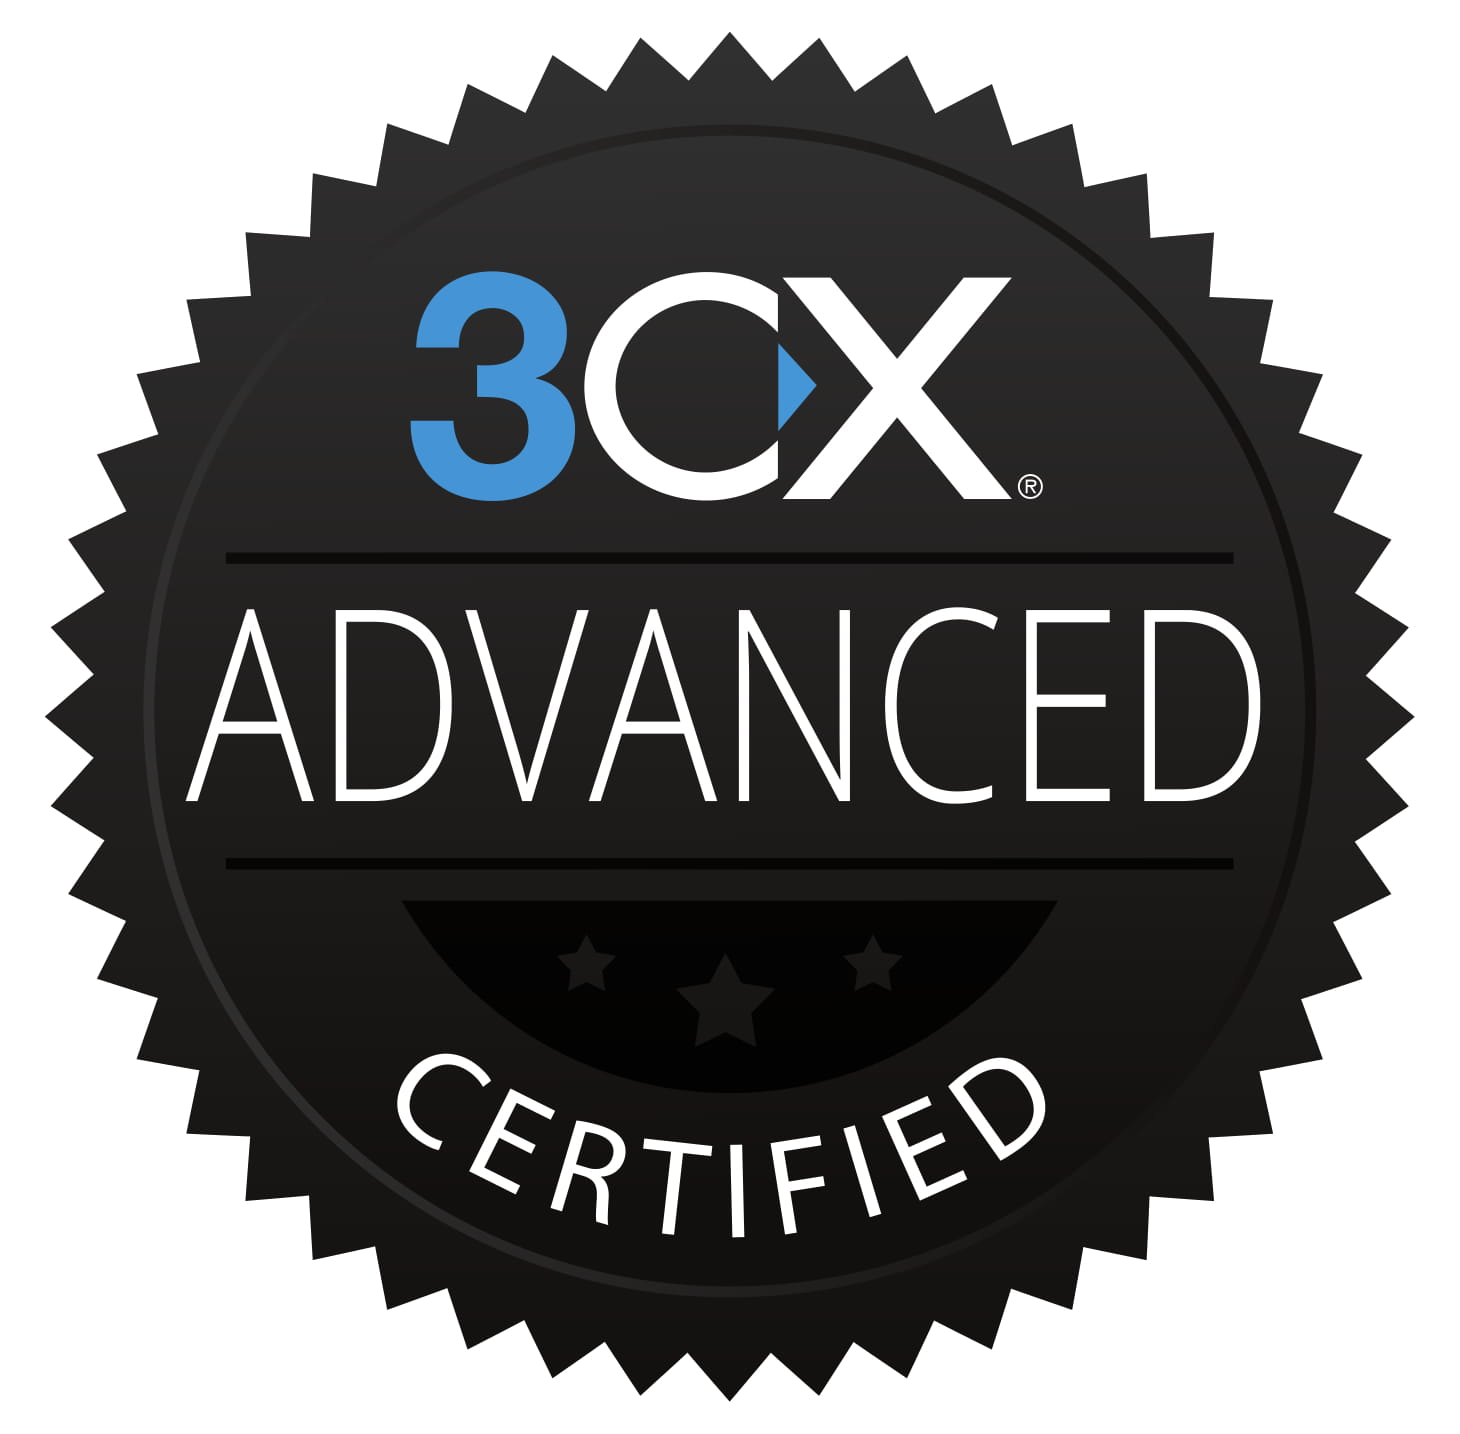 3CX Advanced Certified Badge